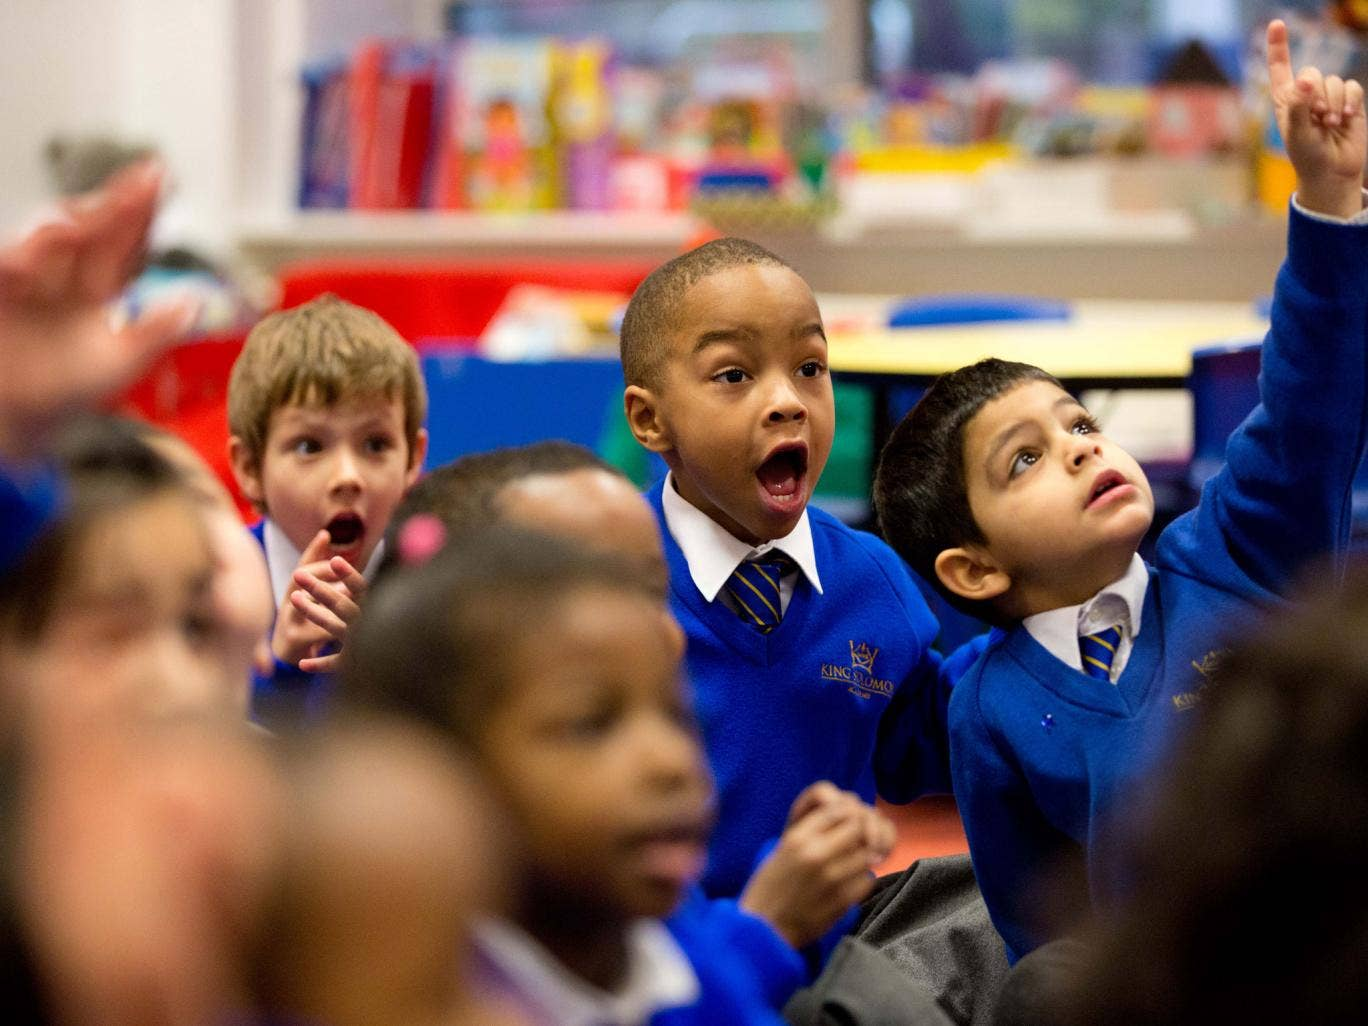 Big ideas: nursery pupils in the 'Southampton' class at the King Solomon Academy